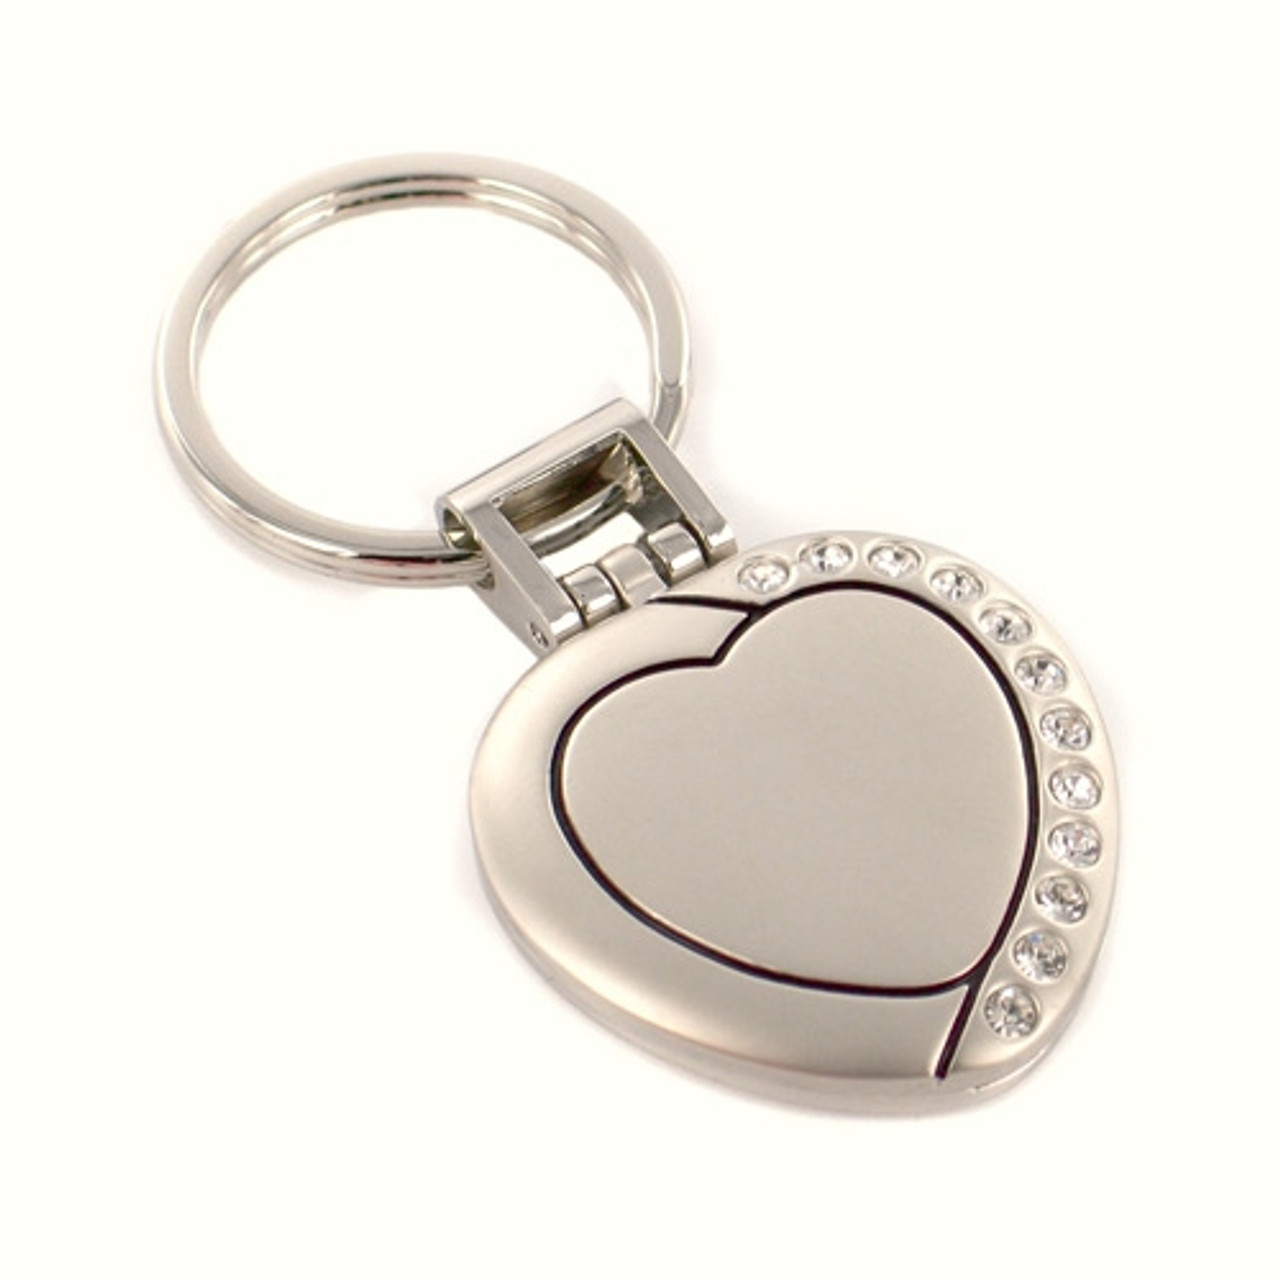 Engraved Keychains, Personalized Keychains